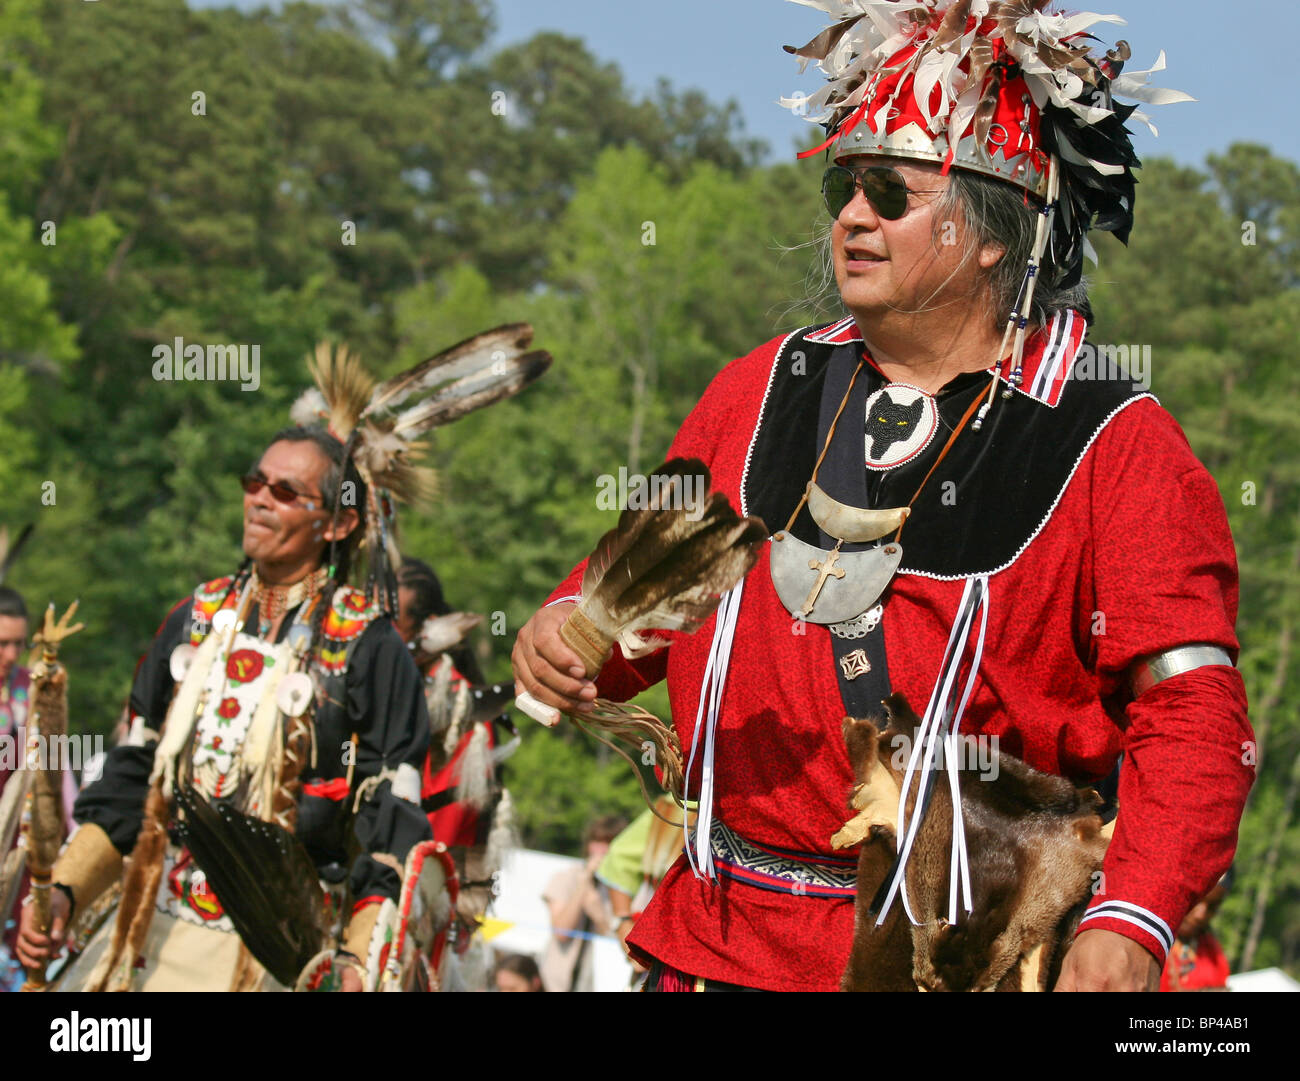 A Native American man dances in full traditional regalia at the 8th Annual Red Wing PowWow in Virginia Beach, Virginia. - Stock Image